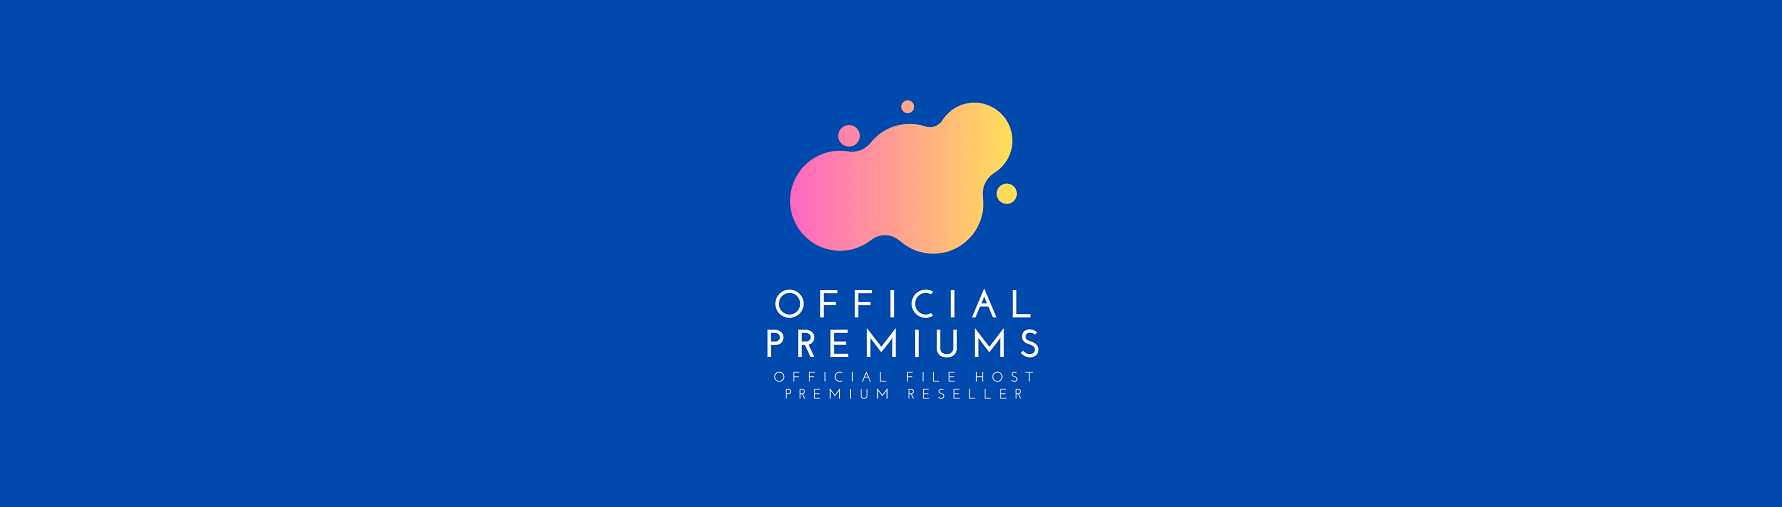 Buy Premium Accounts from Official Reseller Using PayPal